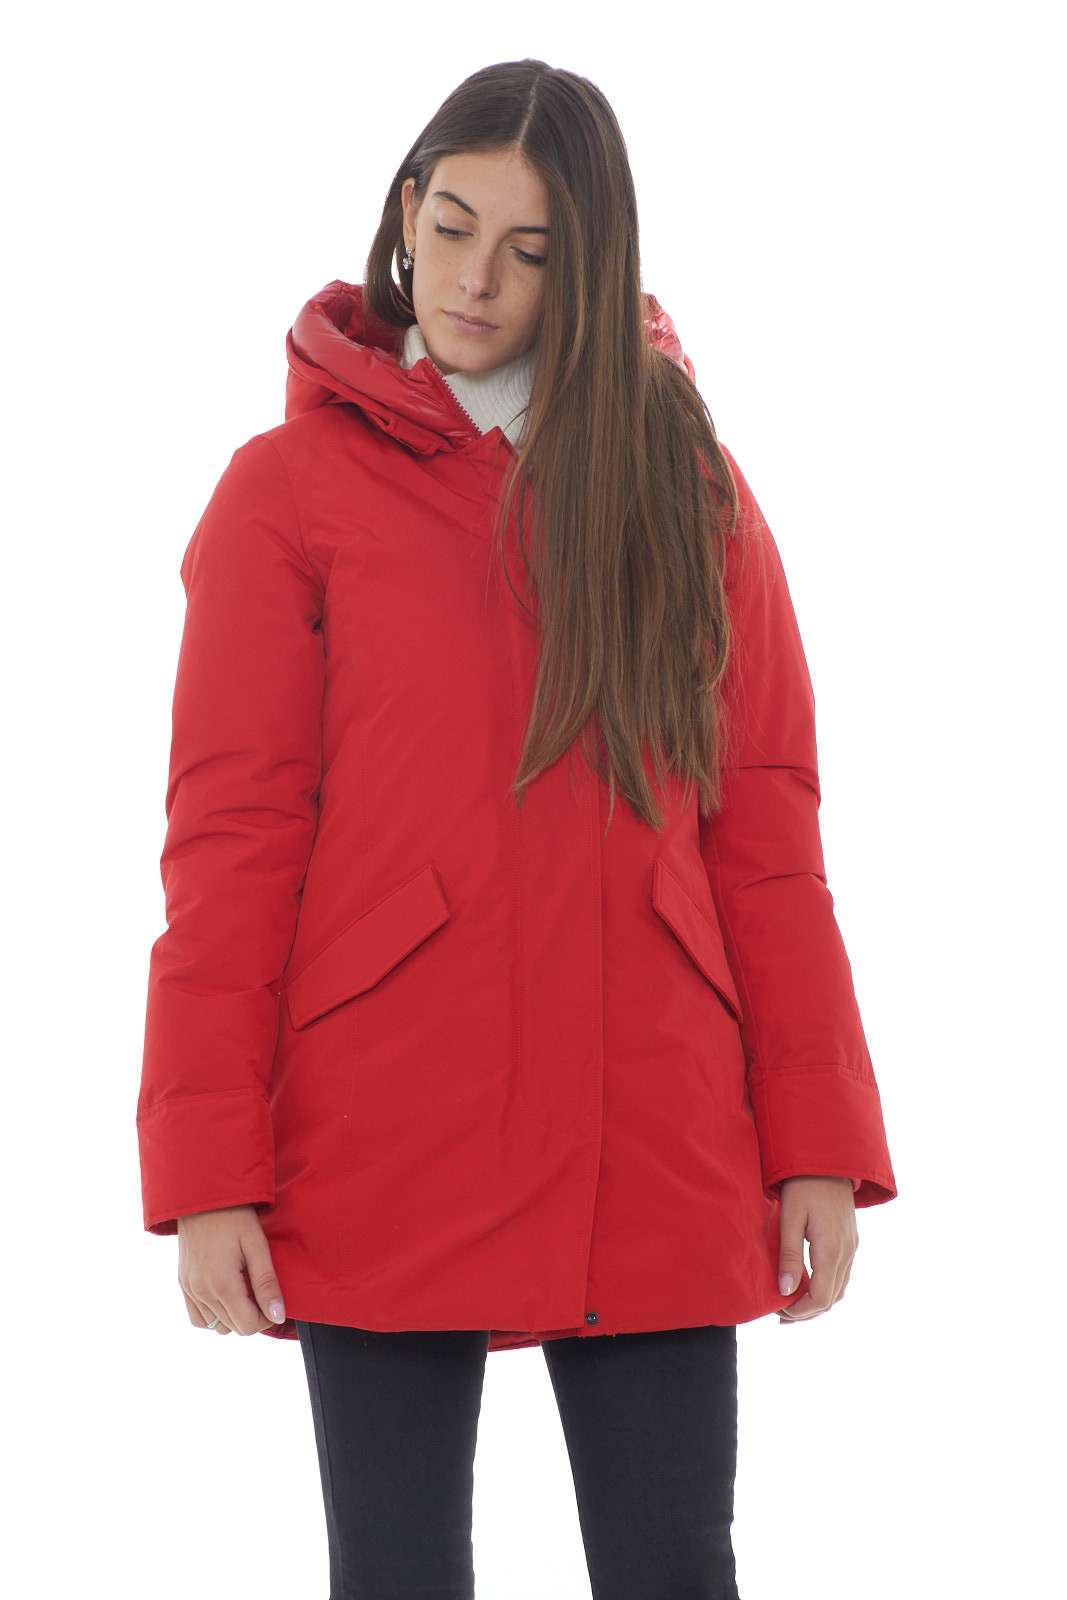 https://www.parmax.com/media/catalog/product/a/i/AI-outlet_parmax-parka-donna-Woolrich-WWCPS2769-A.jpg